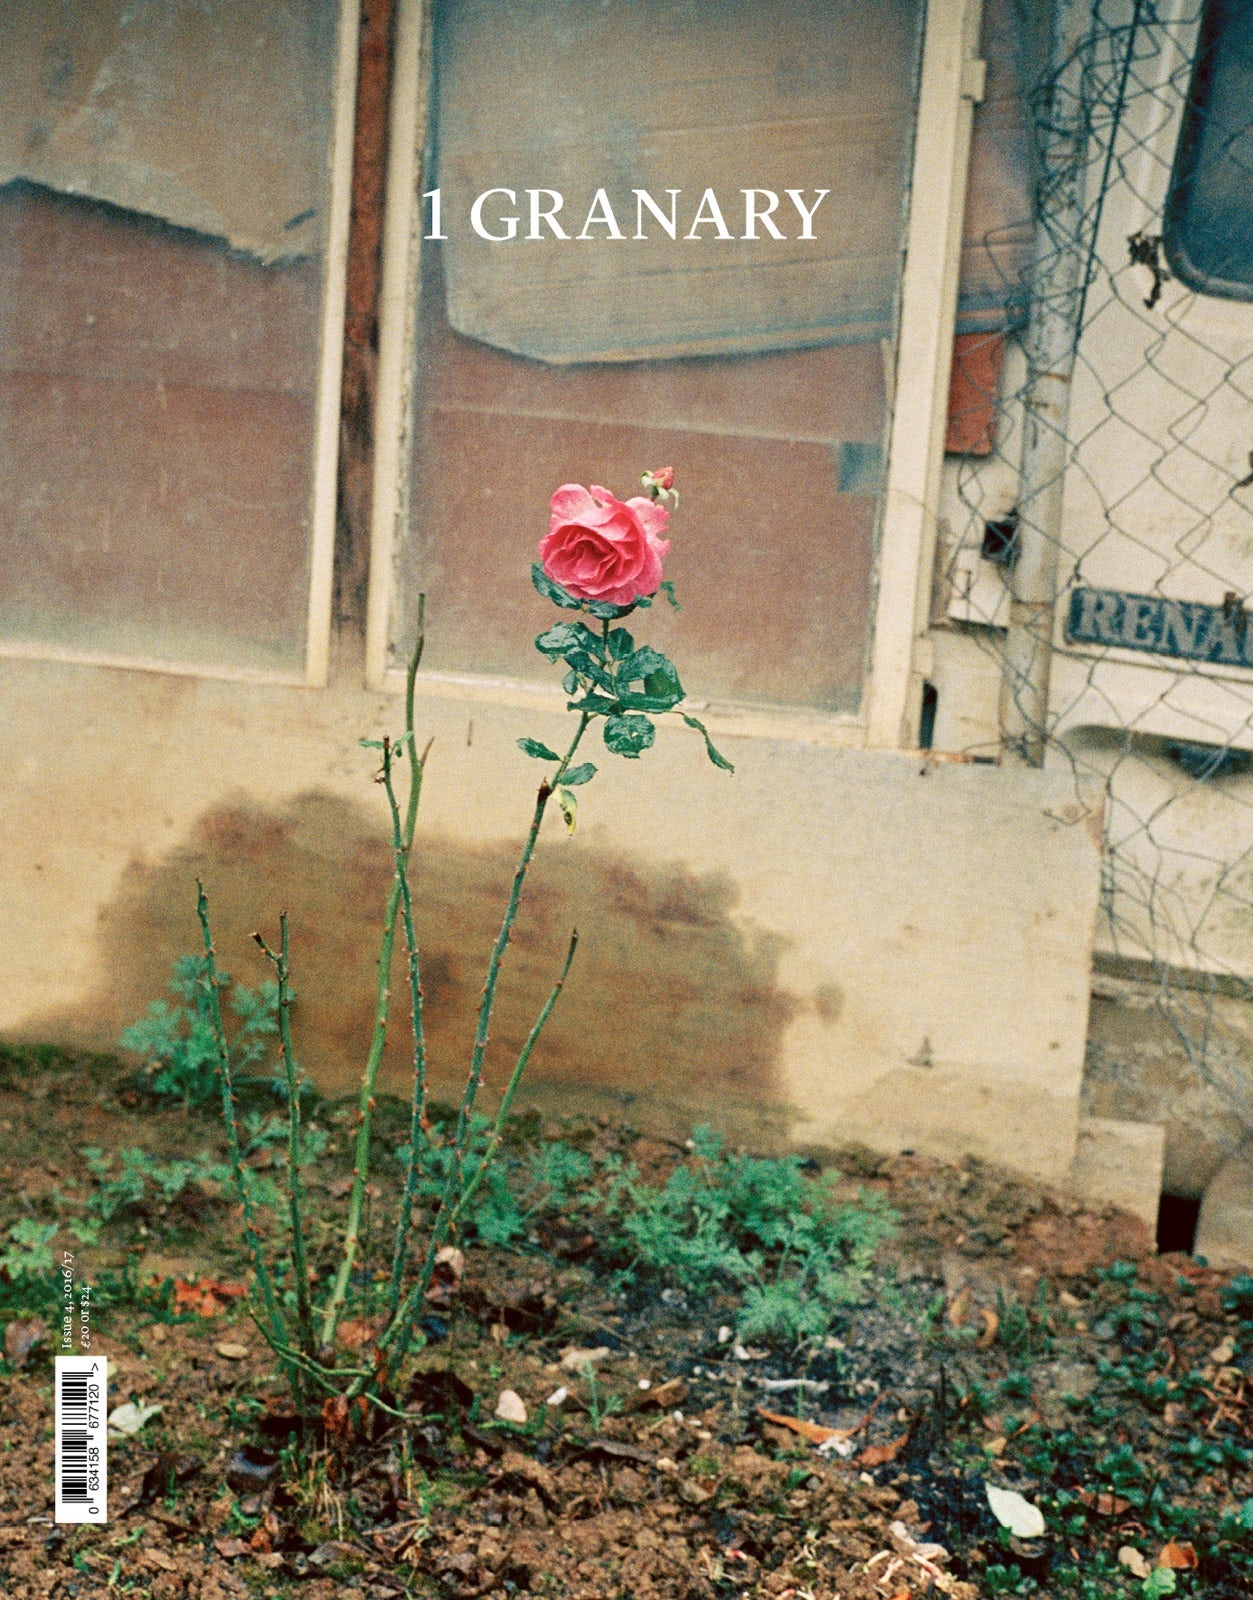 The fifth issue of 1 Granary, out on 1 December 2017 | Cover photography: Chris Rhodes